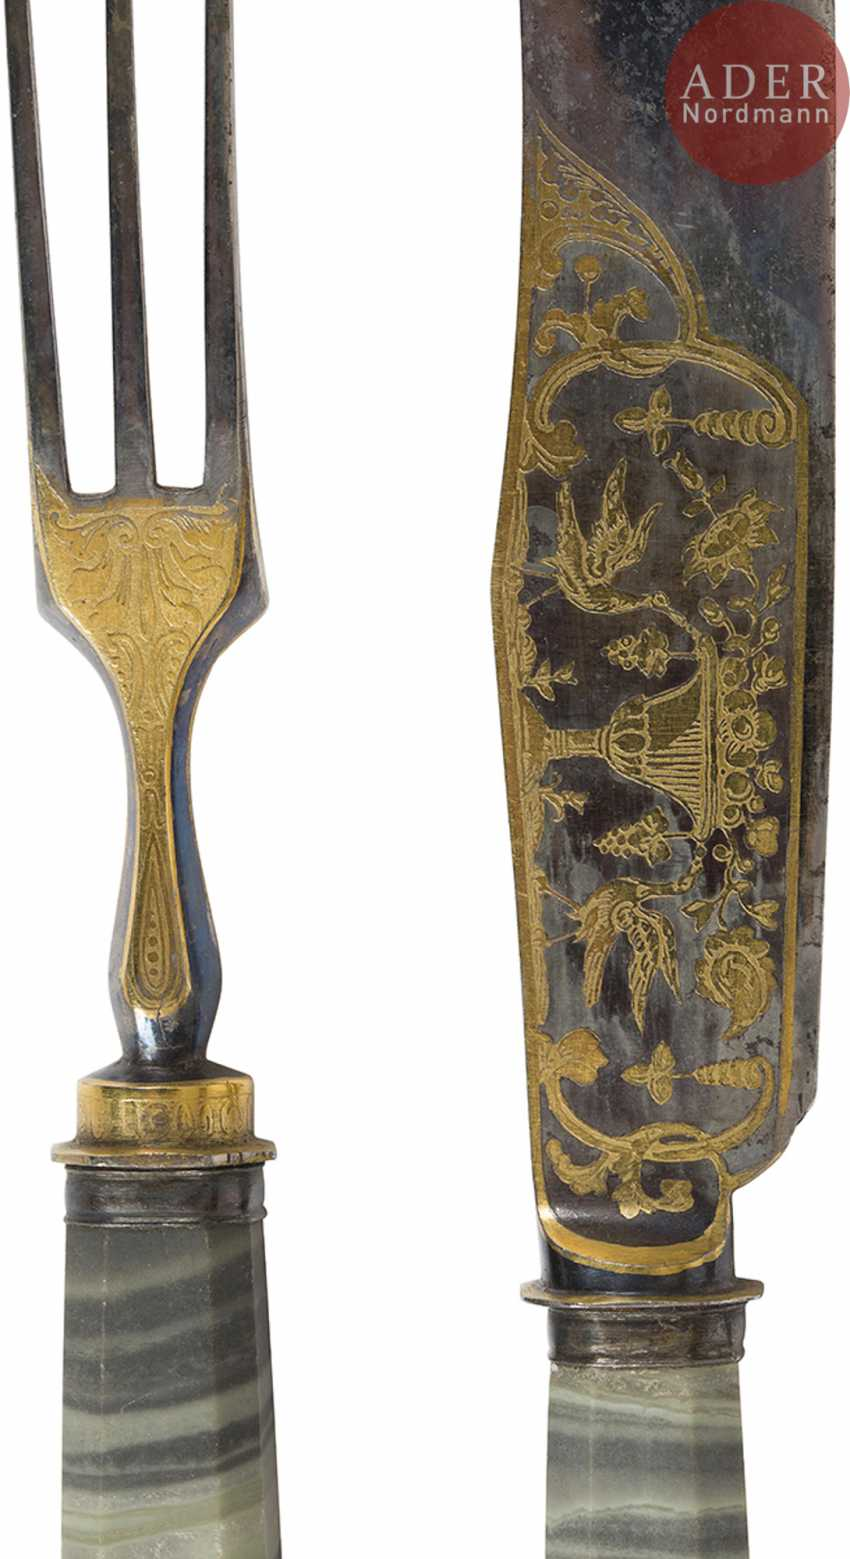 Exceptional set of twelve knives and twelve forks, the handles of jasper Revna, the steel blades engraved with the water high, gilded and blued, decorated on both sides with scenes of hunting and animals. Good condition, slight wear. - photo 5